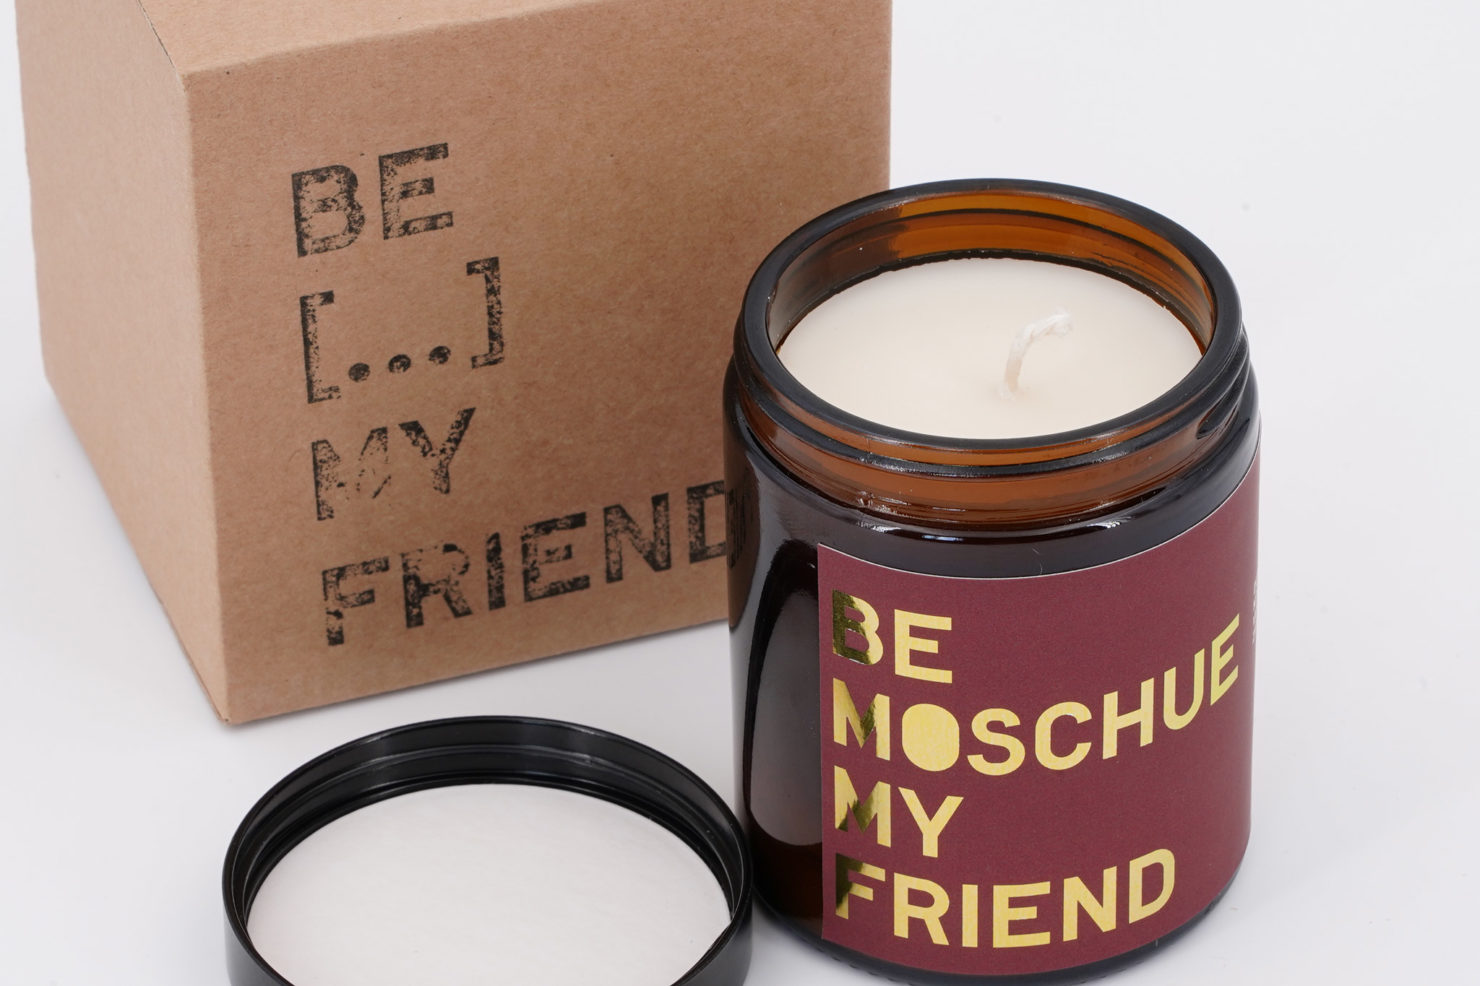 BE LIT&SCENT MY FRIEND MOSCHUE 180ML OPEN BE MY FRIEND